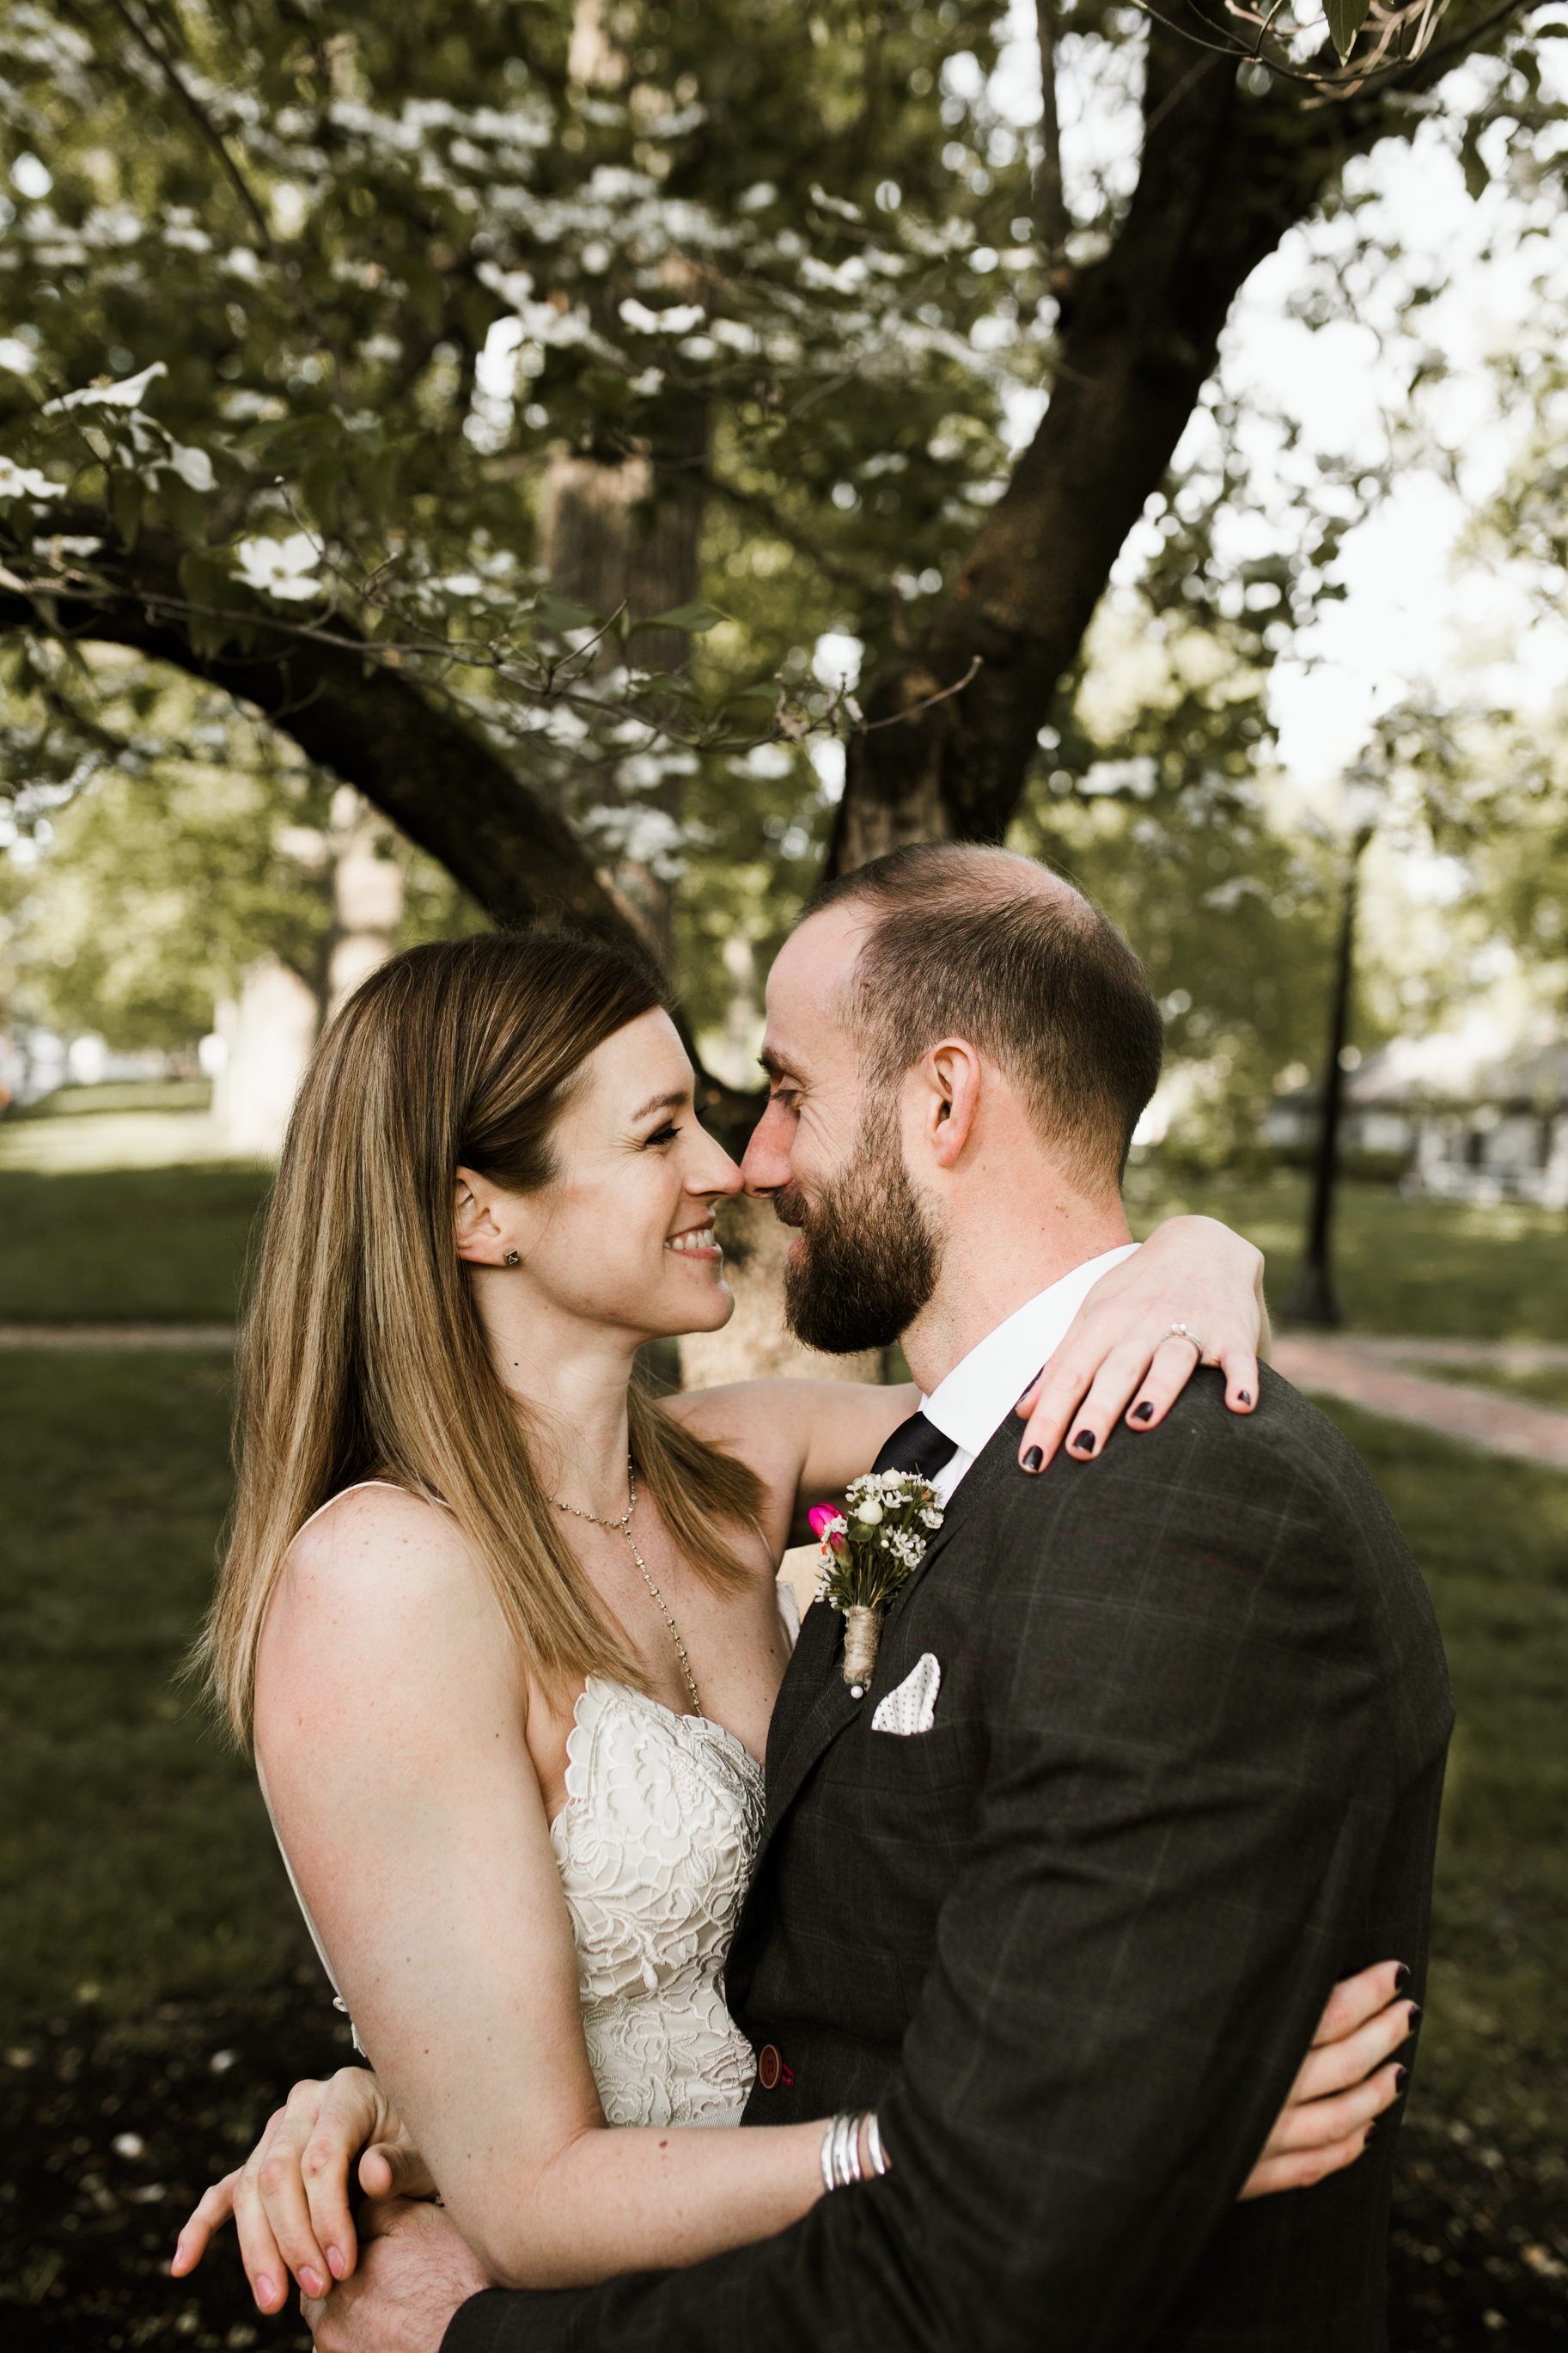 Louisville Courthouse Wedding Louisville Wedding Photographer 2018 Crystal Ludwick Photo Louisville Wedding Photographer Kentucky Wedding Photographer (58 of 76).jpg